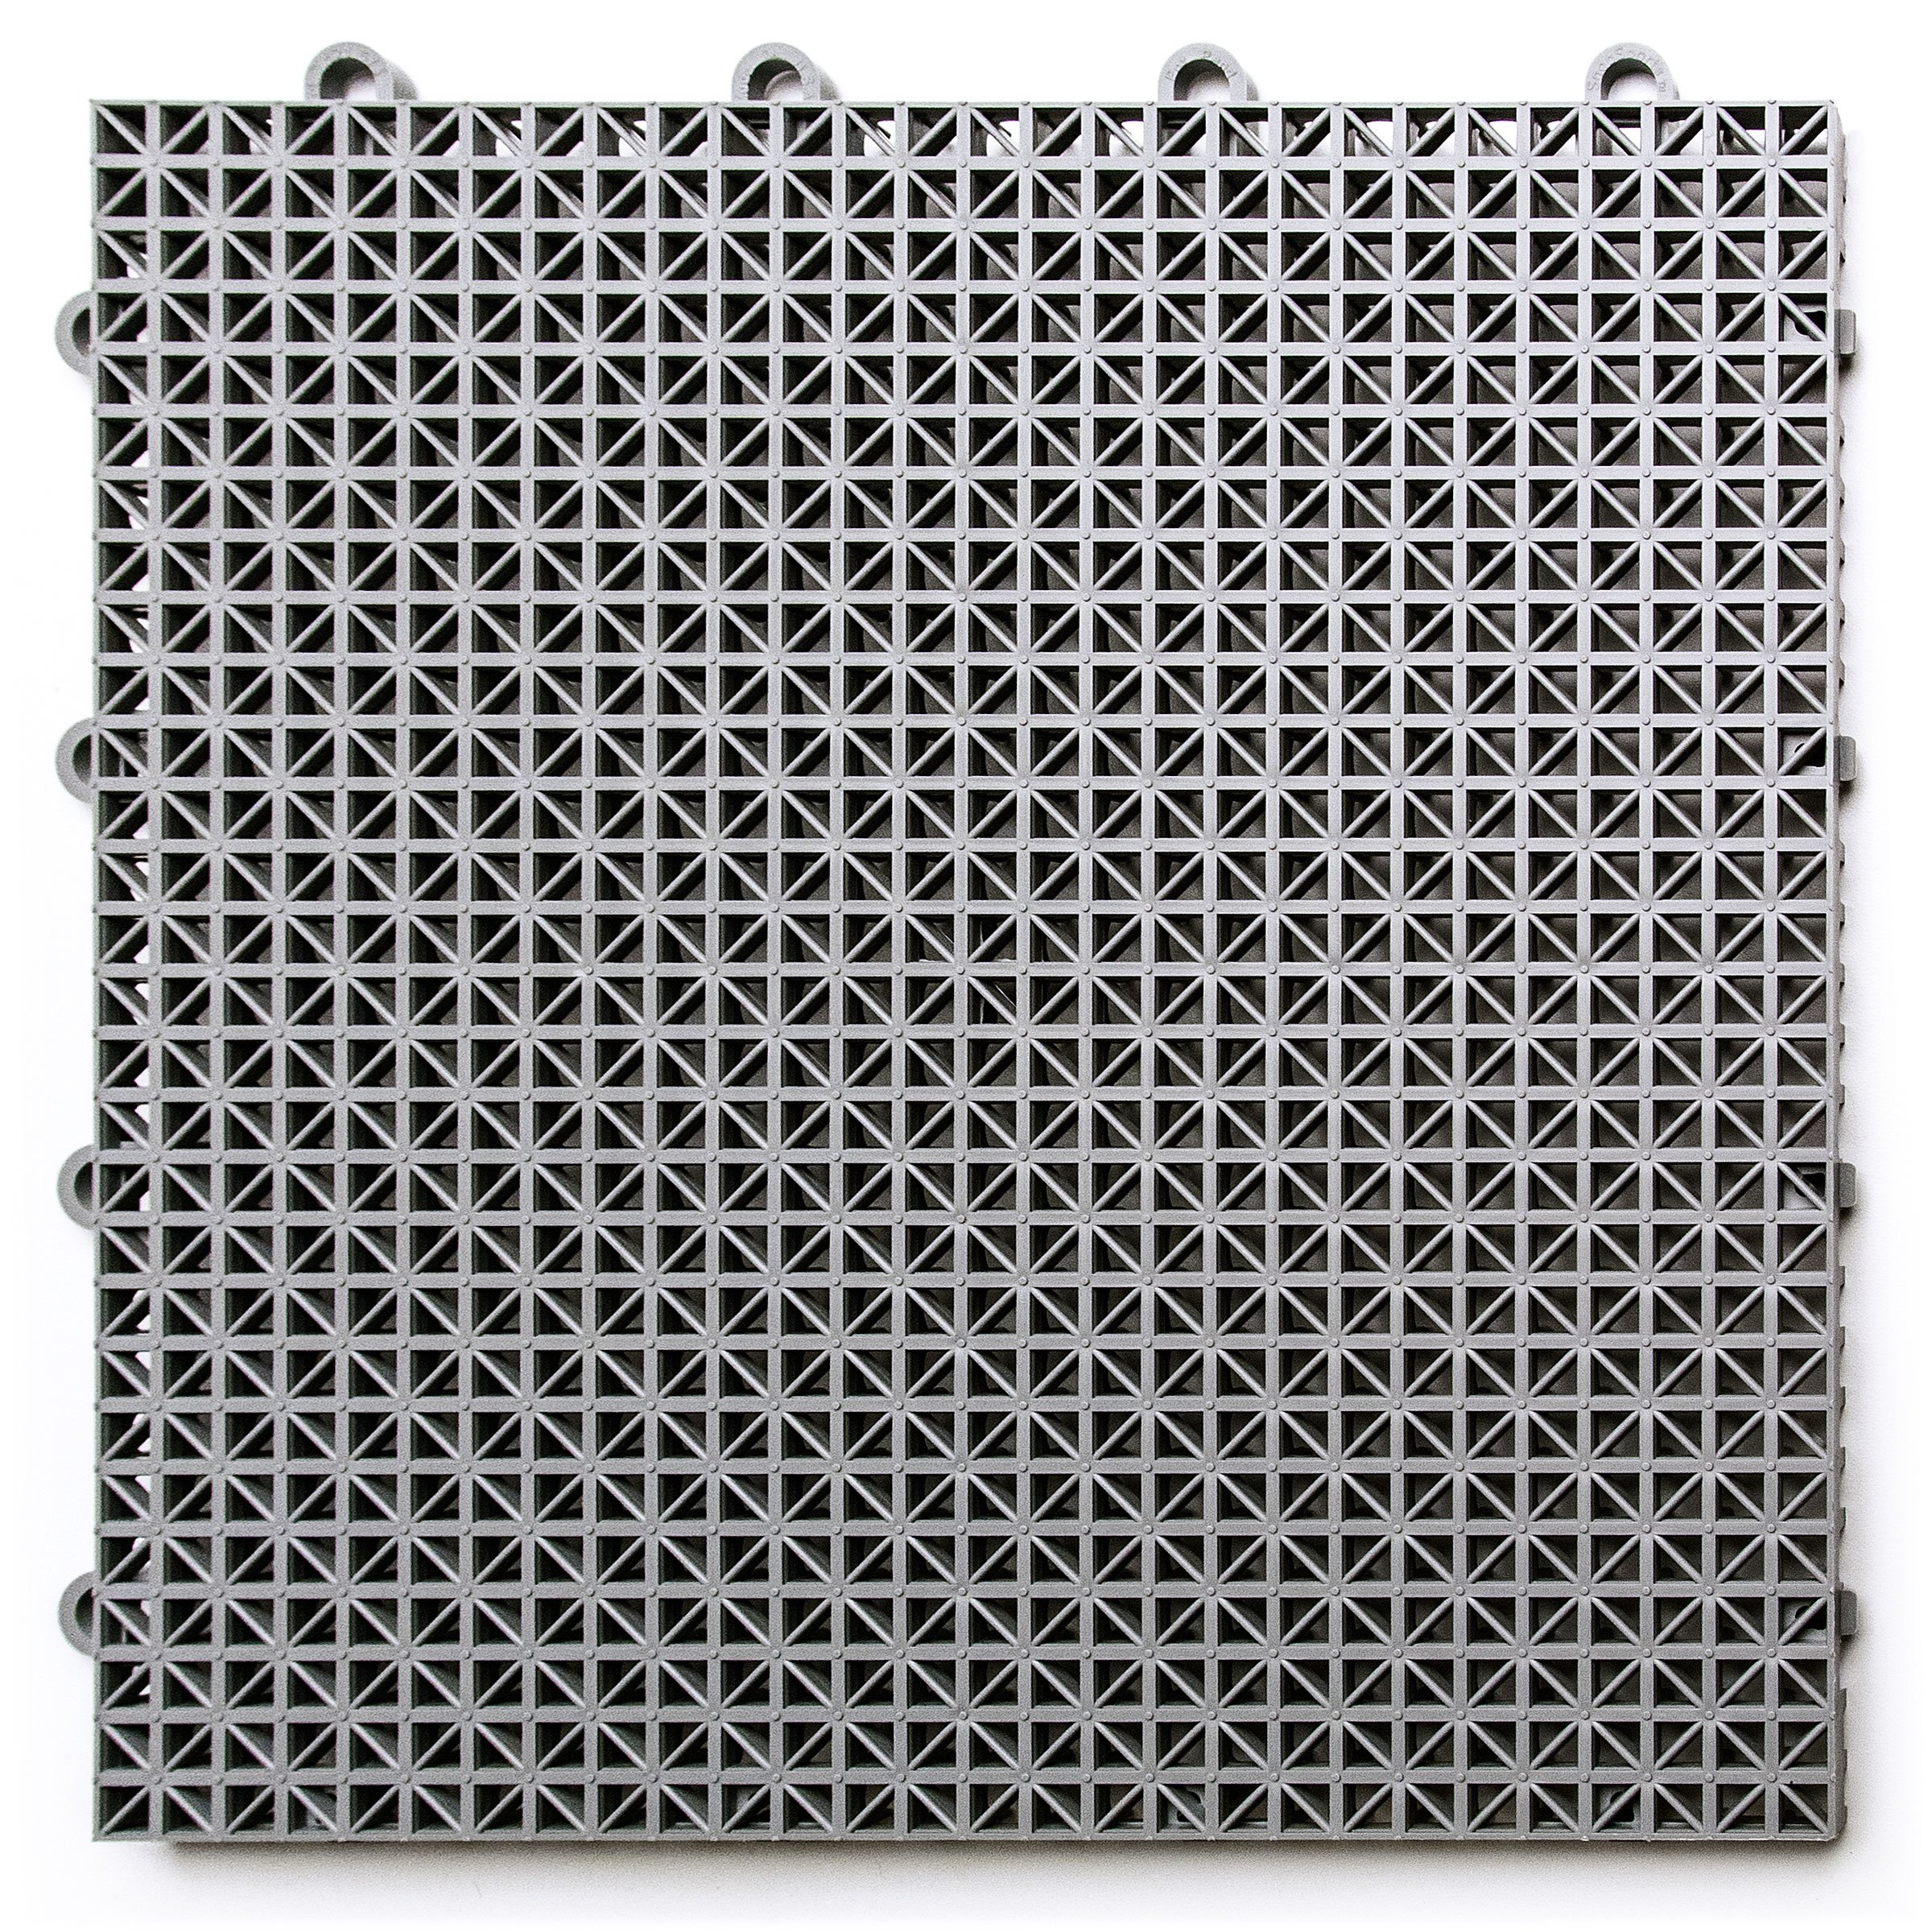 DuraGrid DT24GRAY Outdoor Modular Interlocking Multi-Use Deck Tile, 24 Pack, Gray, Piece